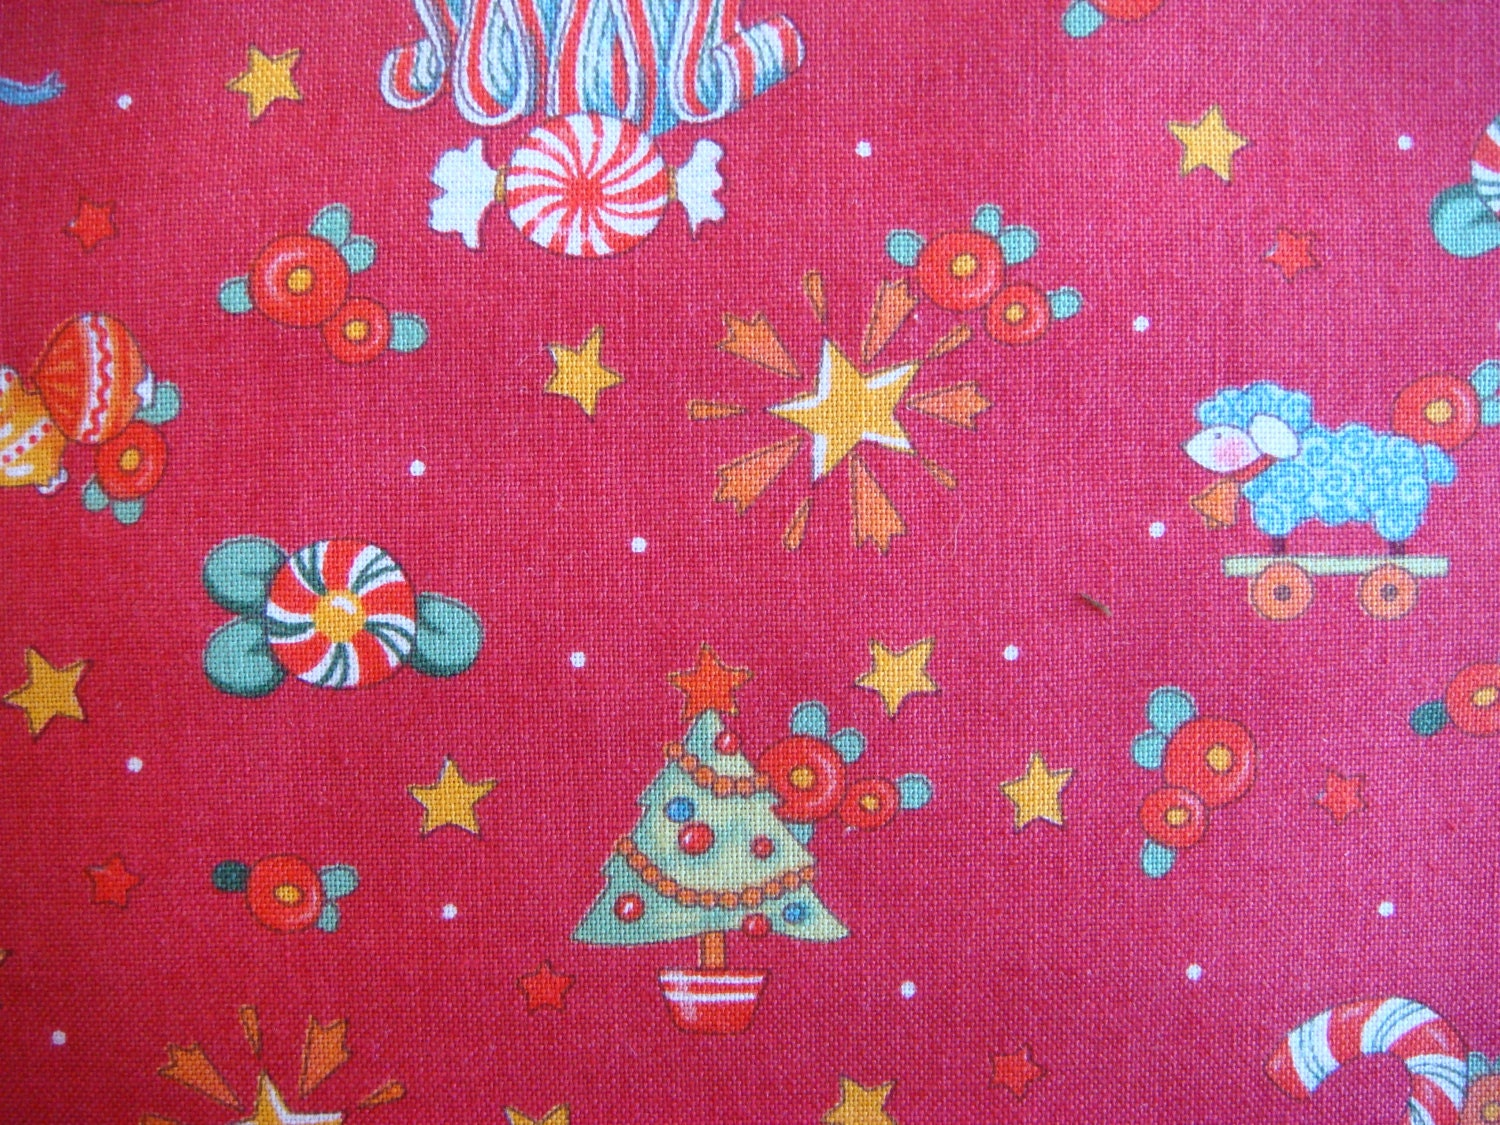 Sale priced moda quilting fabric mary englebrieght for Quilting fabric sale